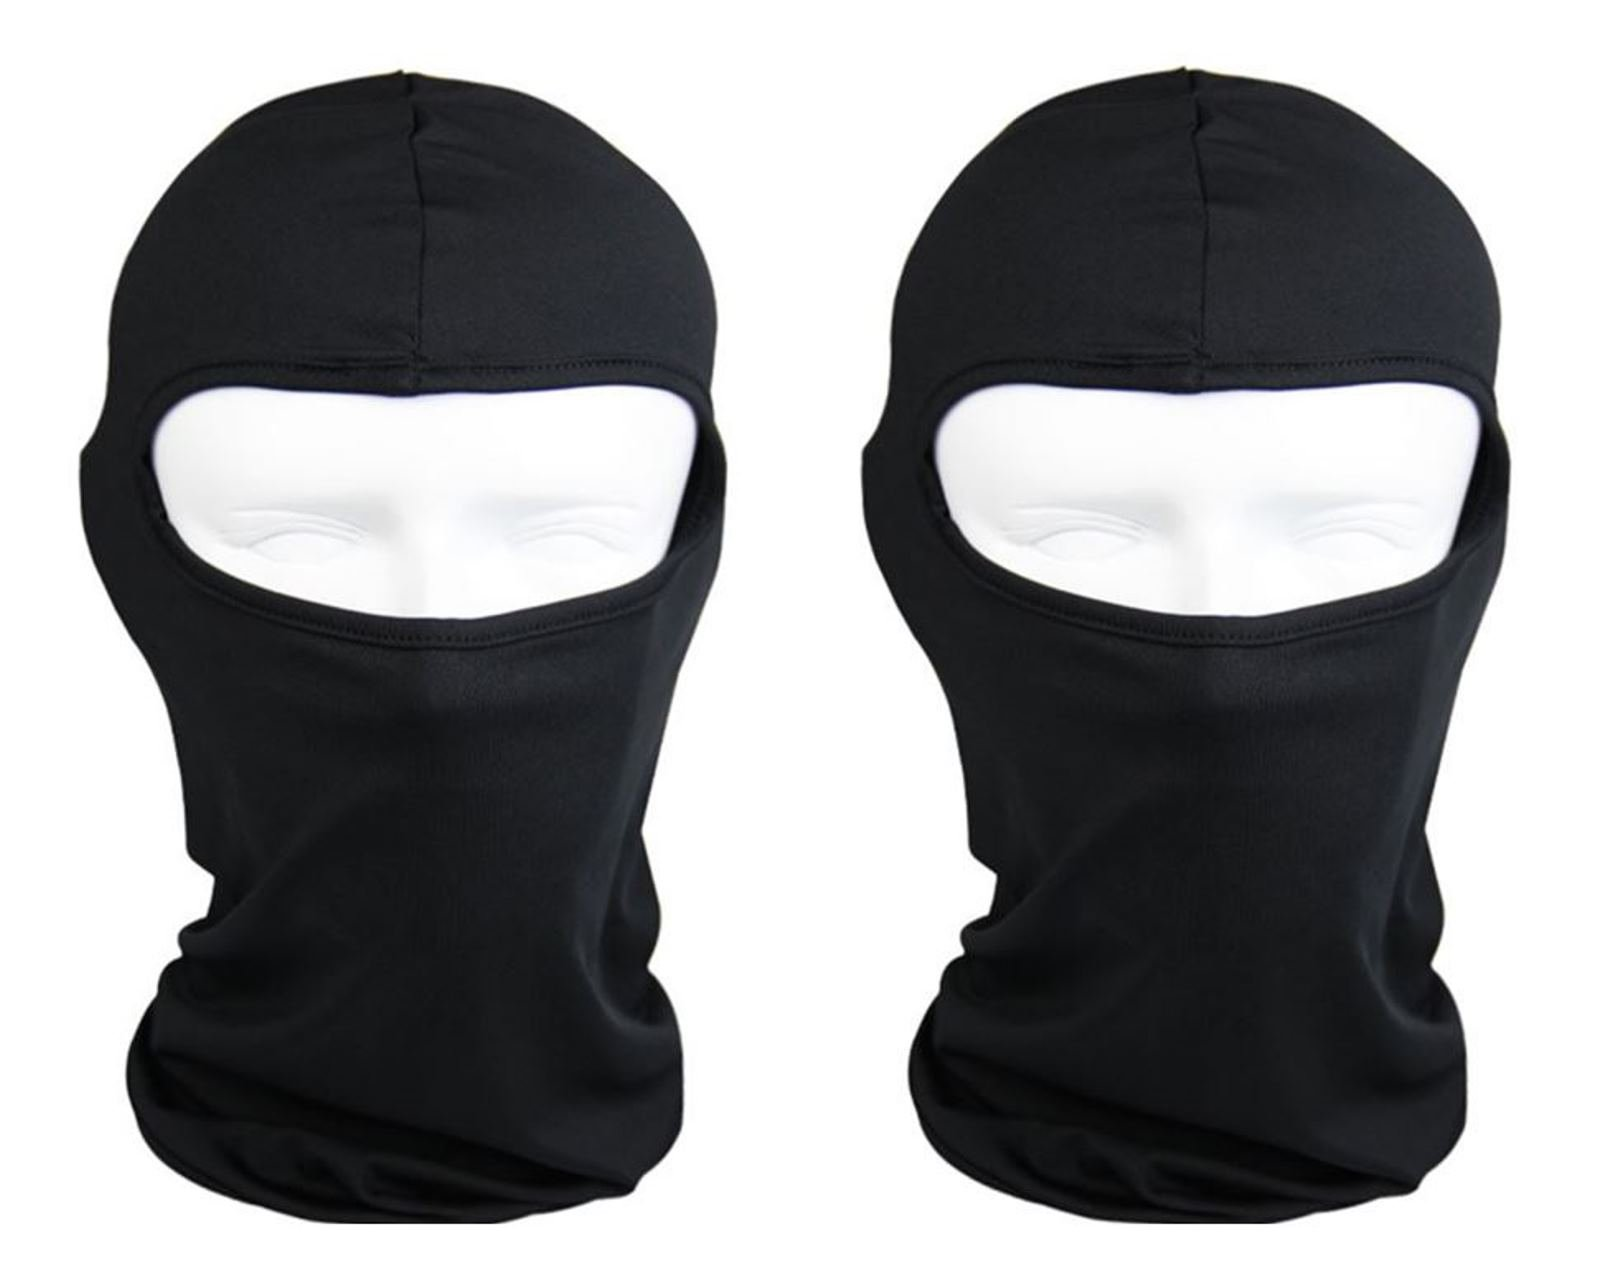 The Bikers Zone 5 Pack- Cotton Stretchable Balaclava Face Mask, Ski Mask, Helmet Liner (Black)